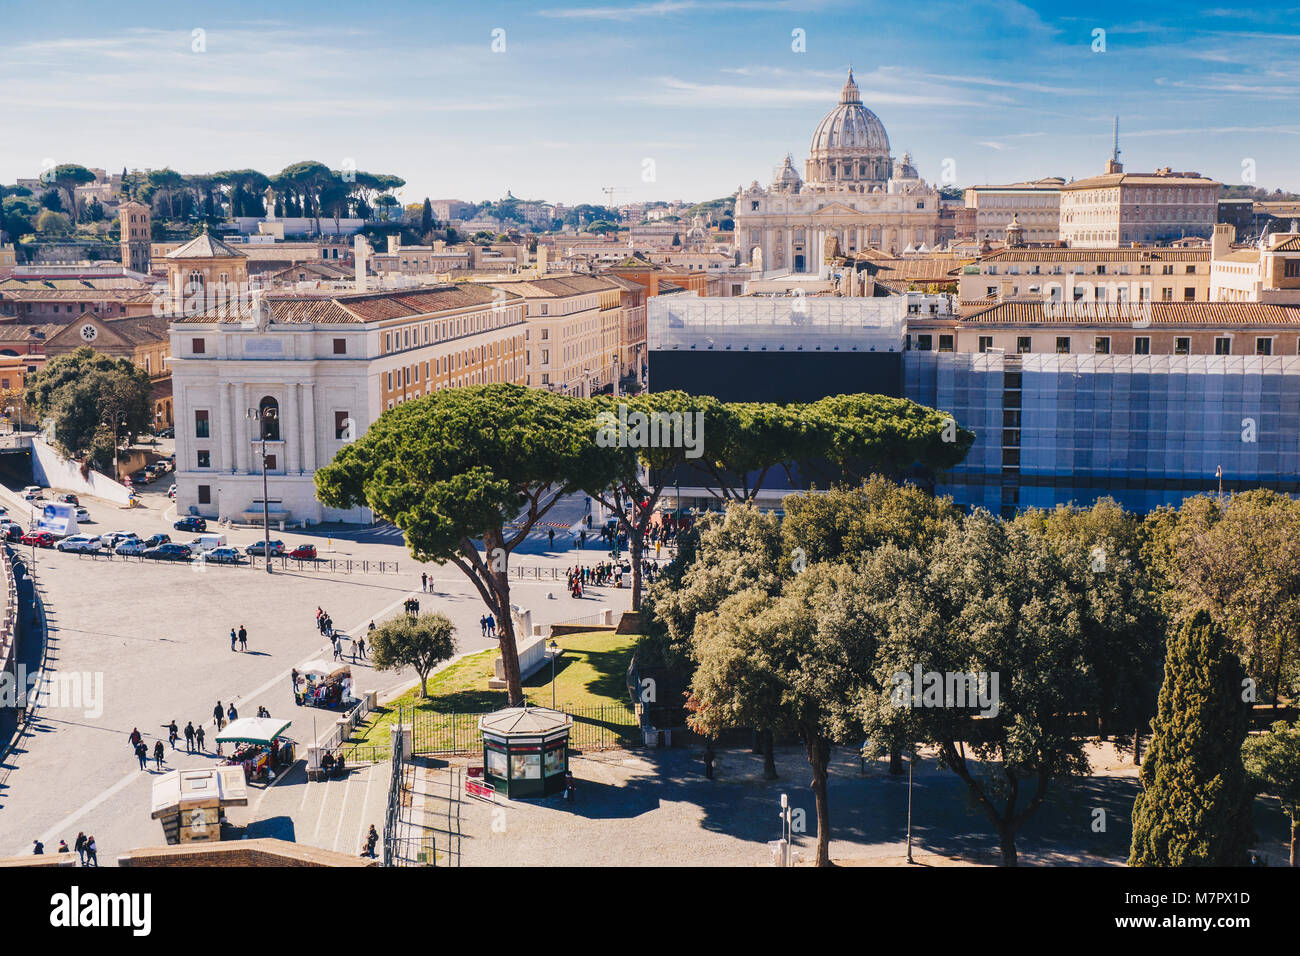 Rome city skyline with St. Peter's Basilica in the Vatican visible - Stock Image